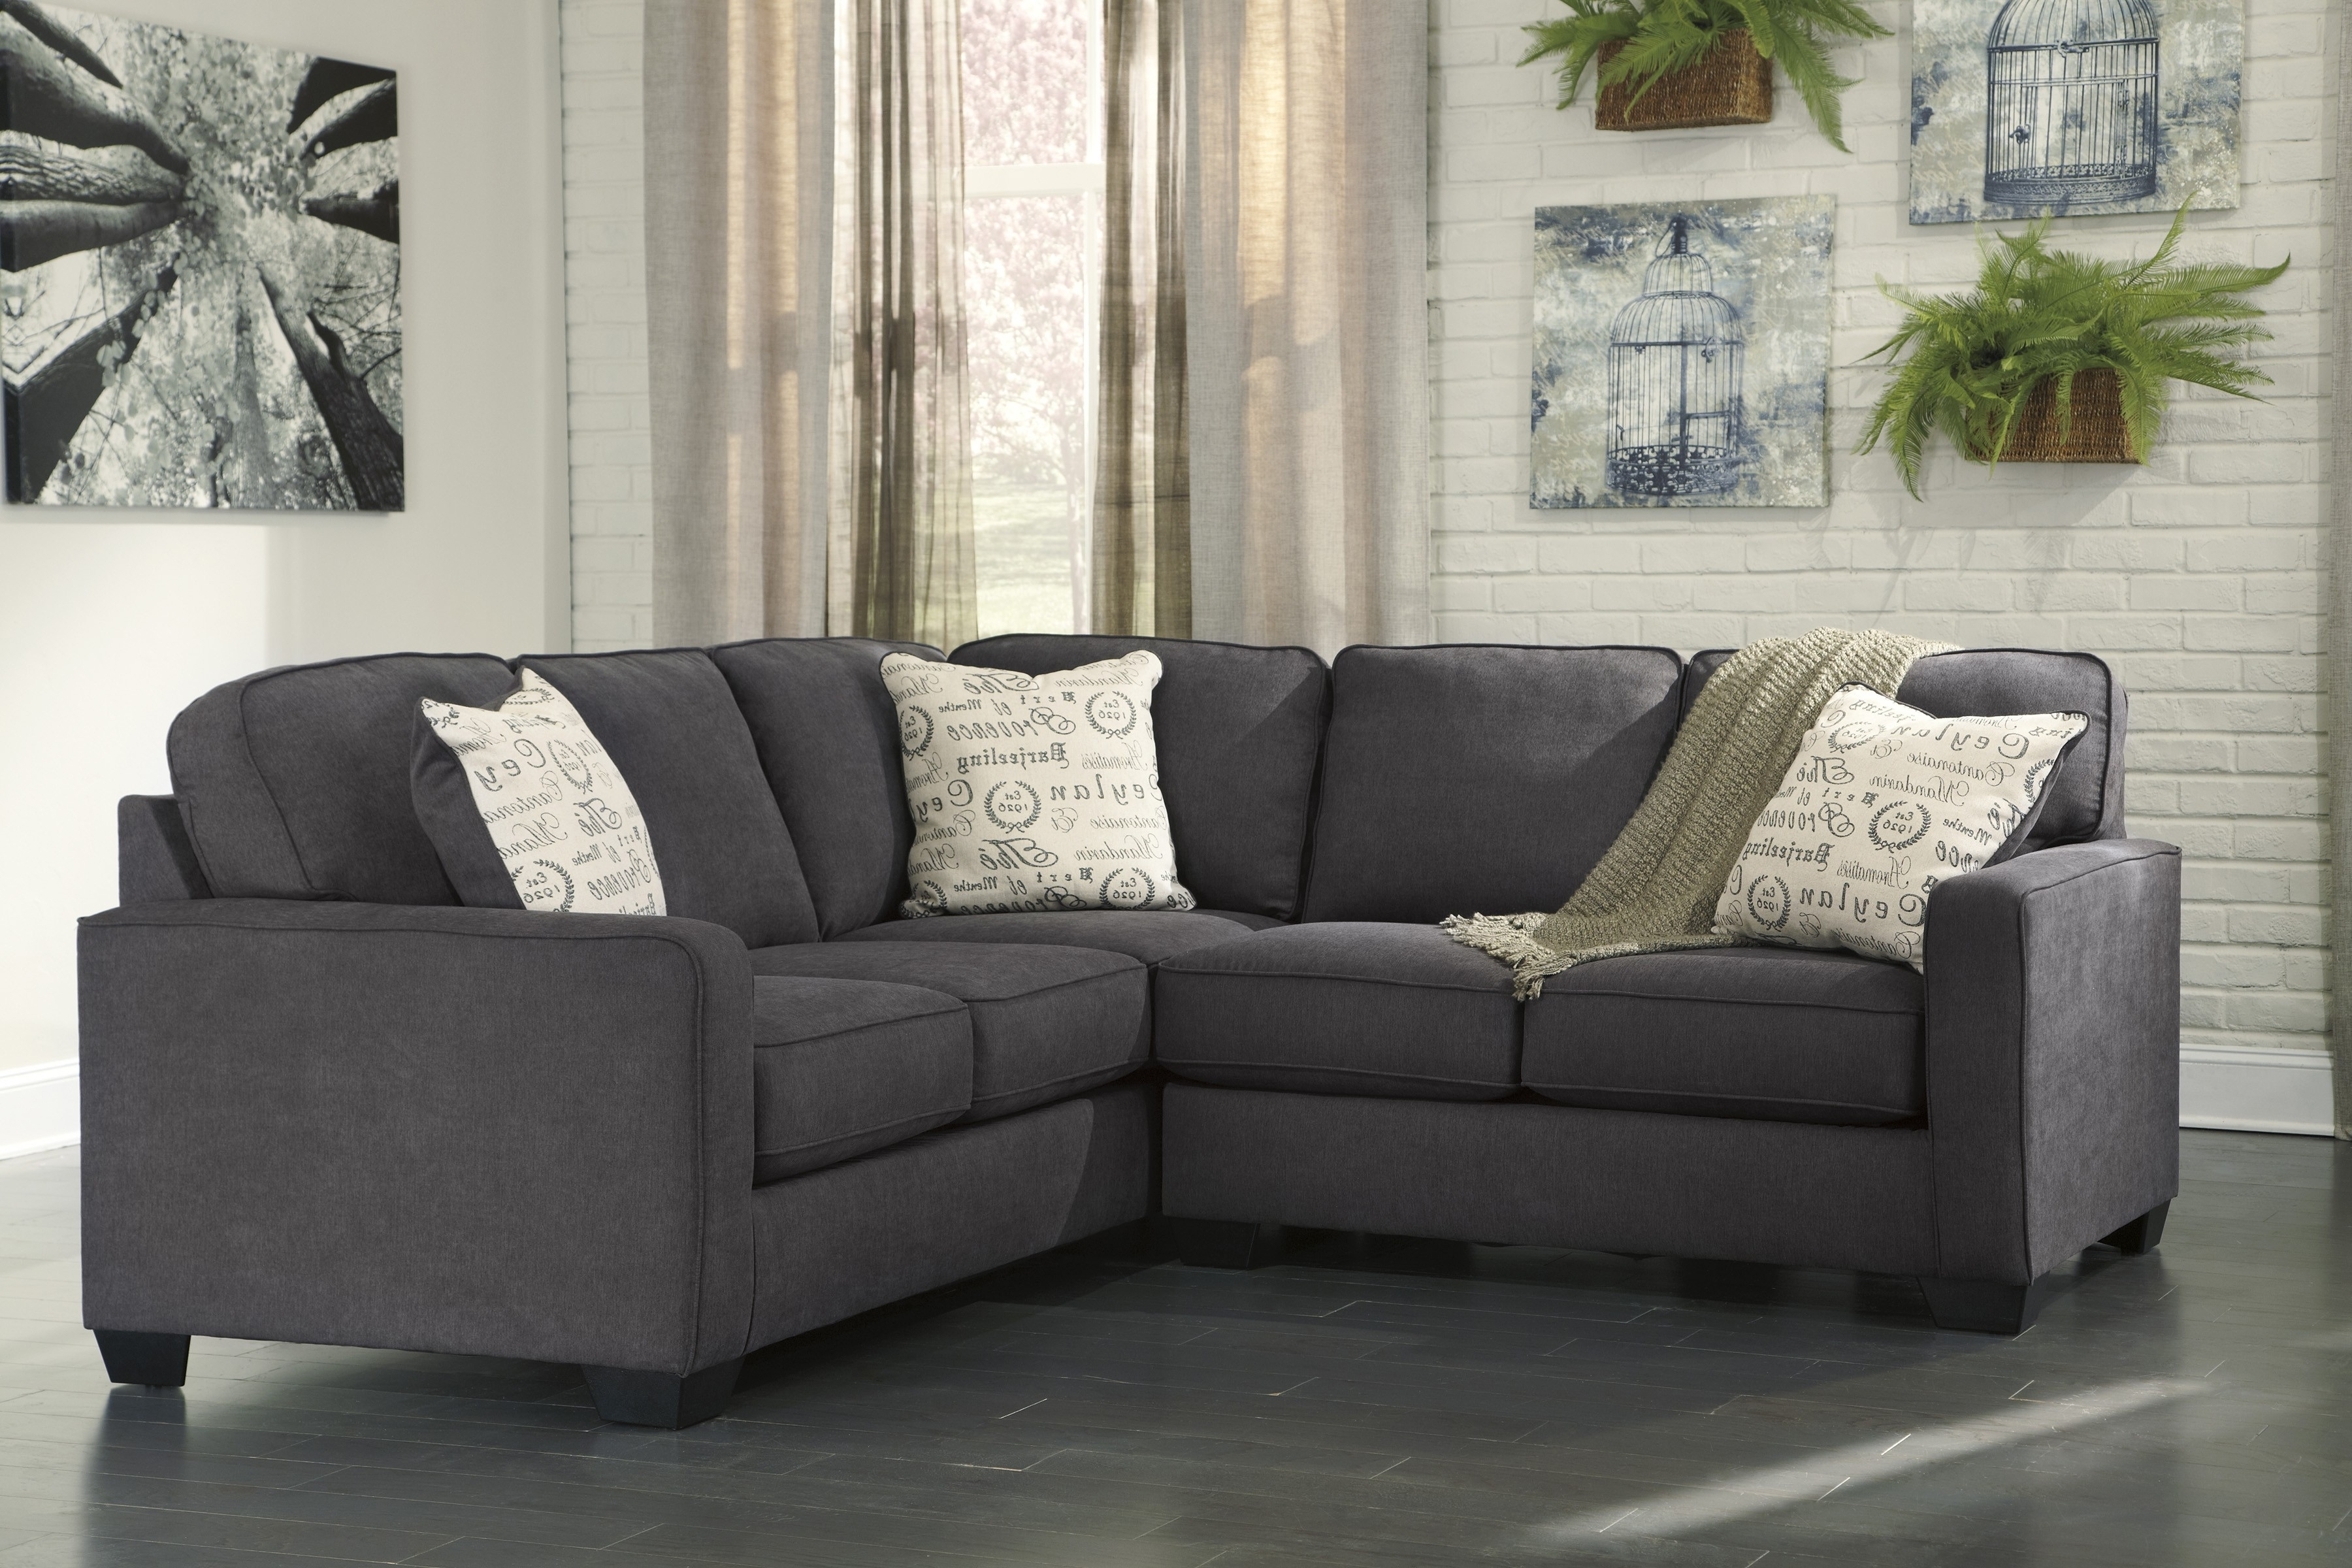 Alenya Charcoal 2 Piece Sectional Sofa For $ (Image 3 of 10)